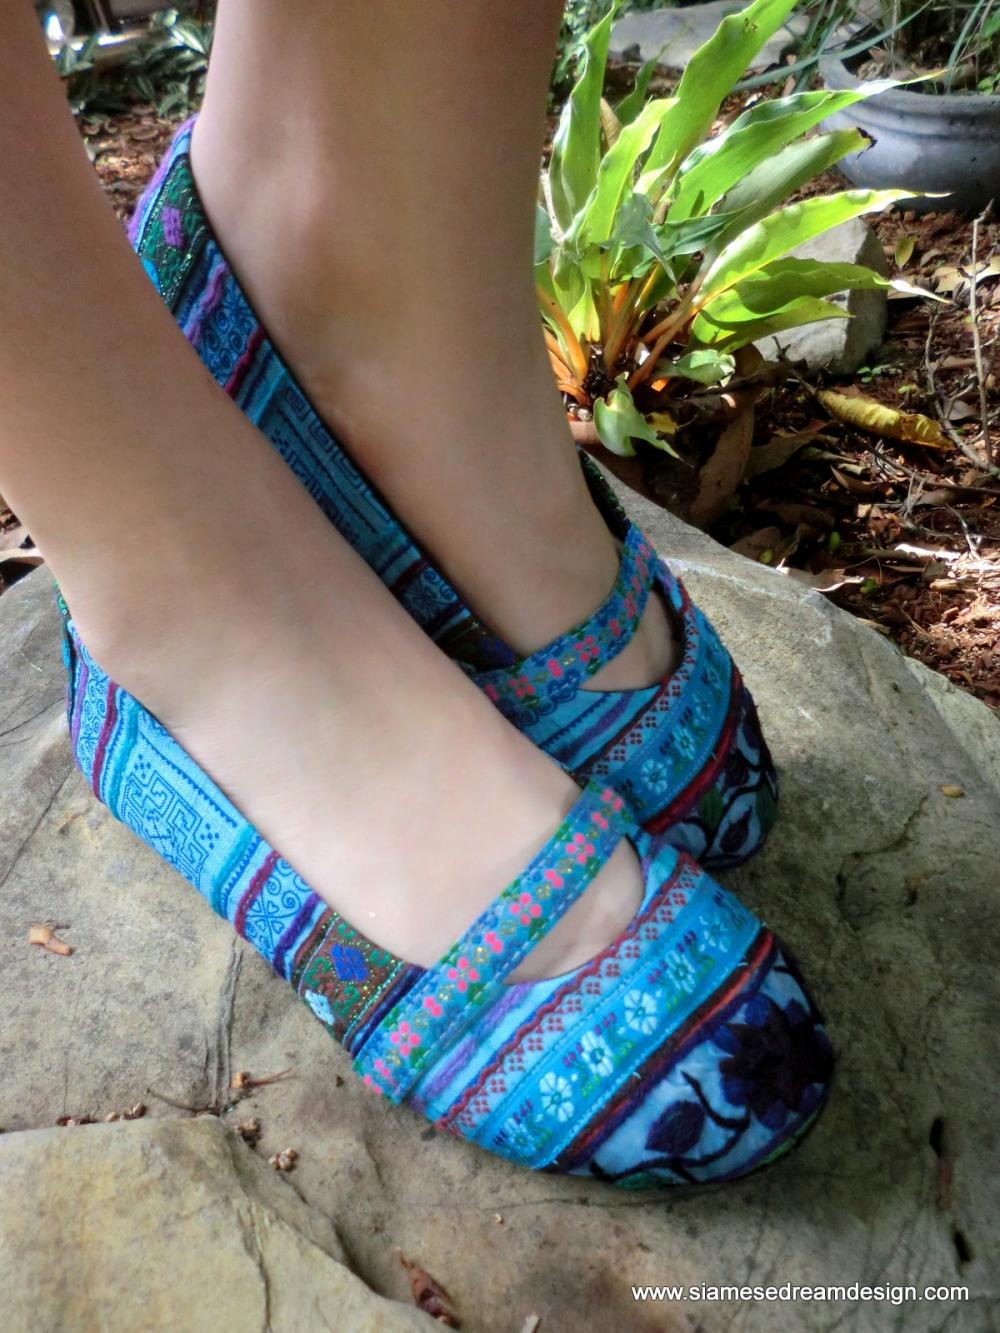 Blue Floral Colorful Hmong Embroidered Ballet Flats Shoes